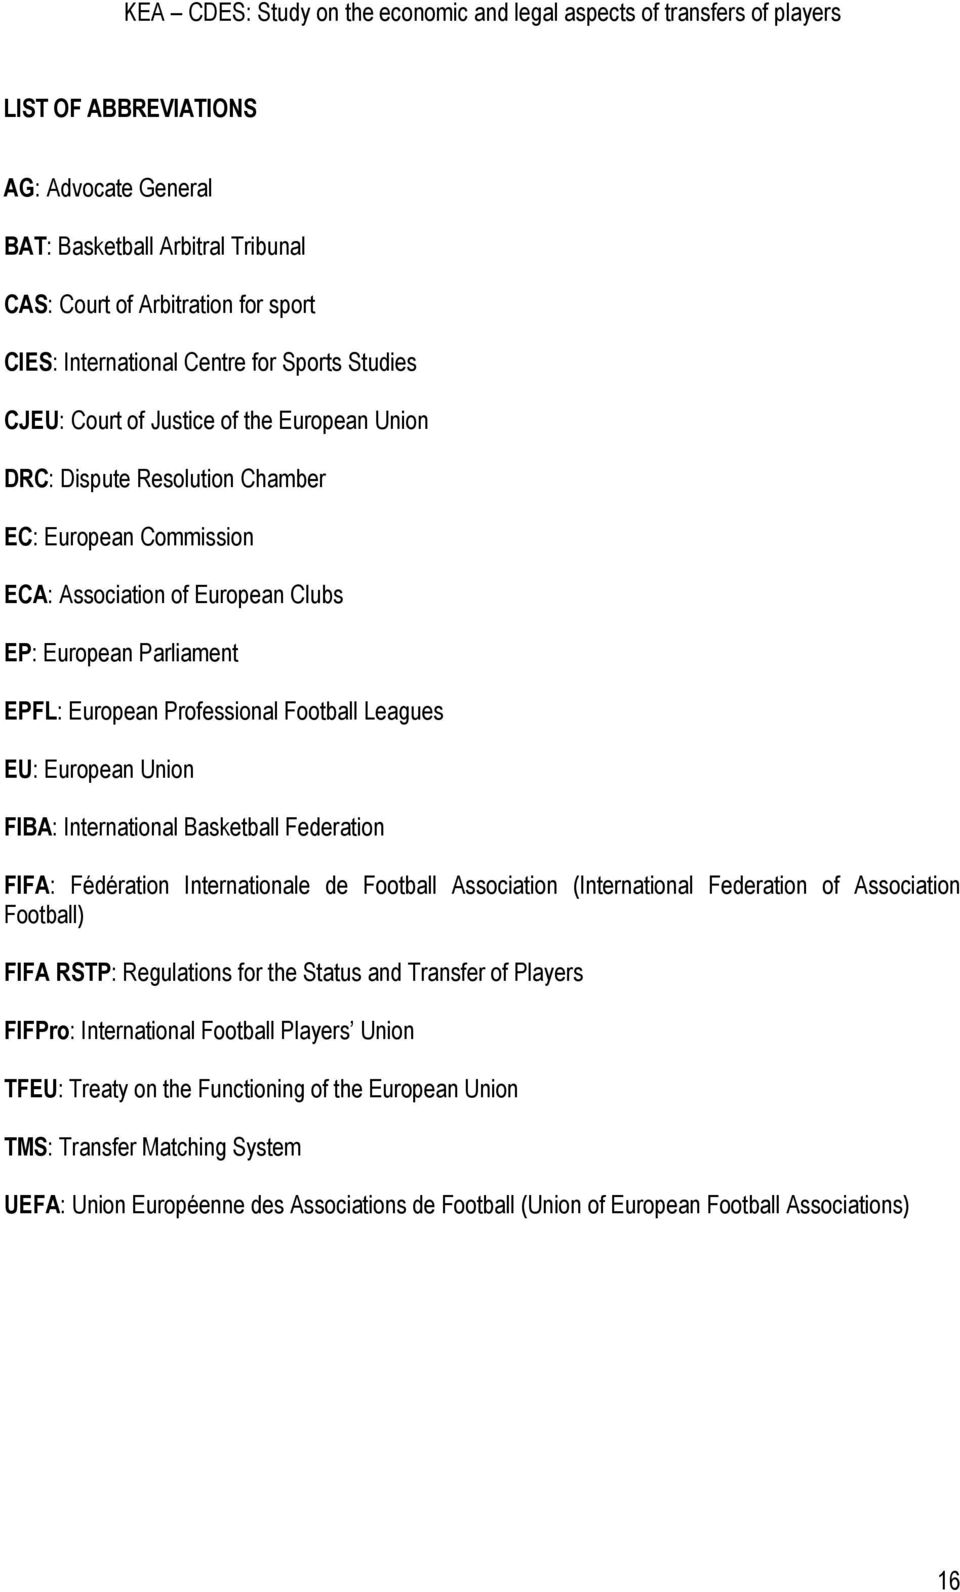 International Basketball Federation FIFA: Fédération Internationale de Football Association (International Federation of Association Football) FIFA RSTP: Regulations for the Status and Transfer of